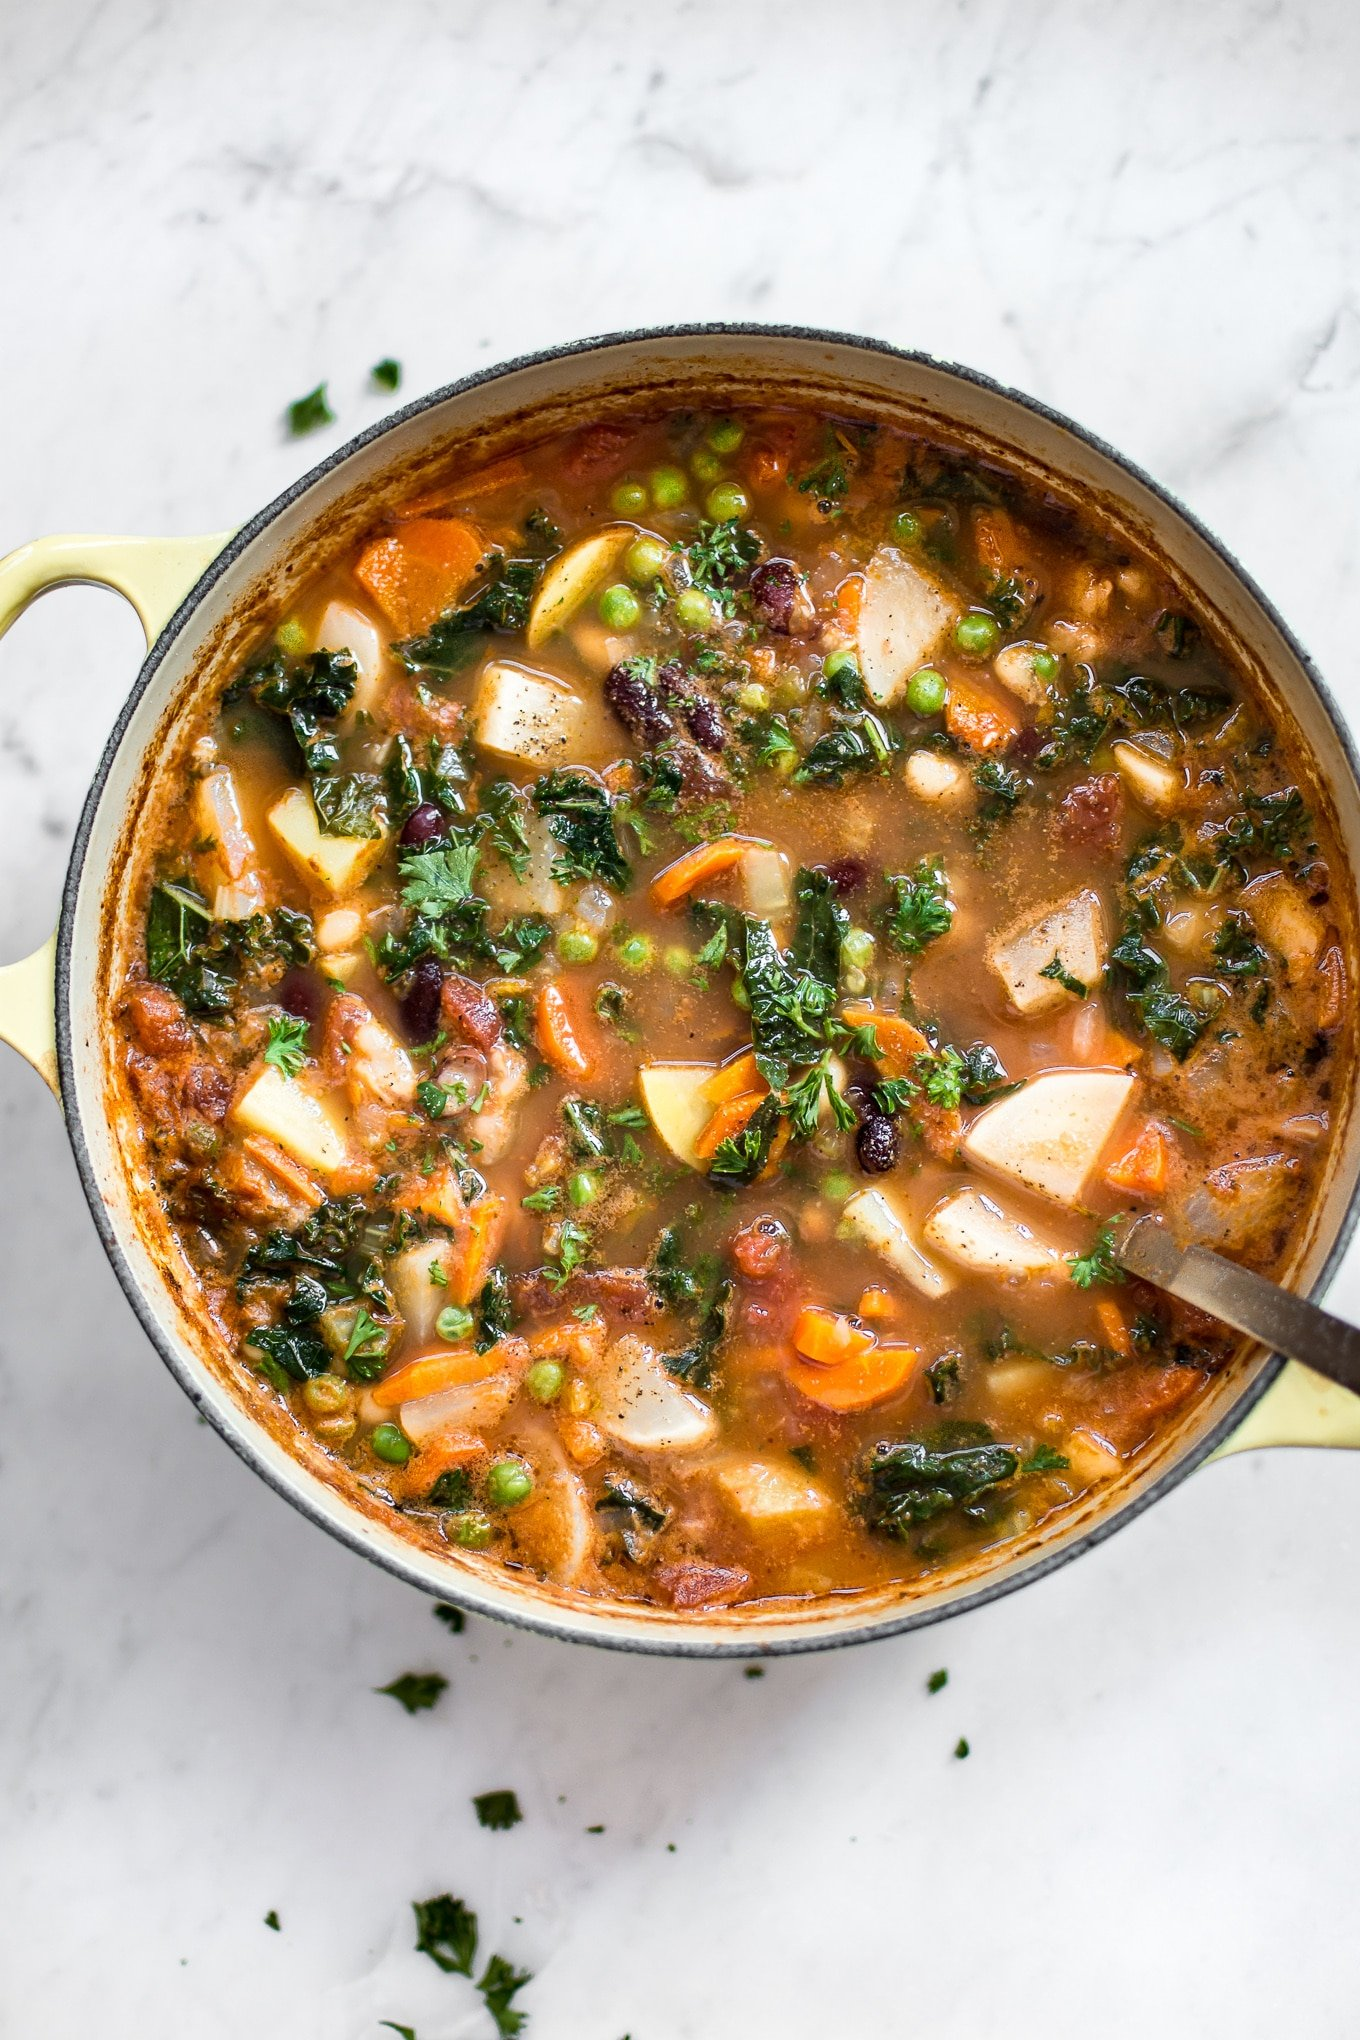 This easy vegetable and bean soup comes together quickly and makes a healthy and hearty meal. You can easily customize it with whatever veggies you have on hand.